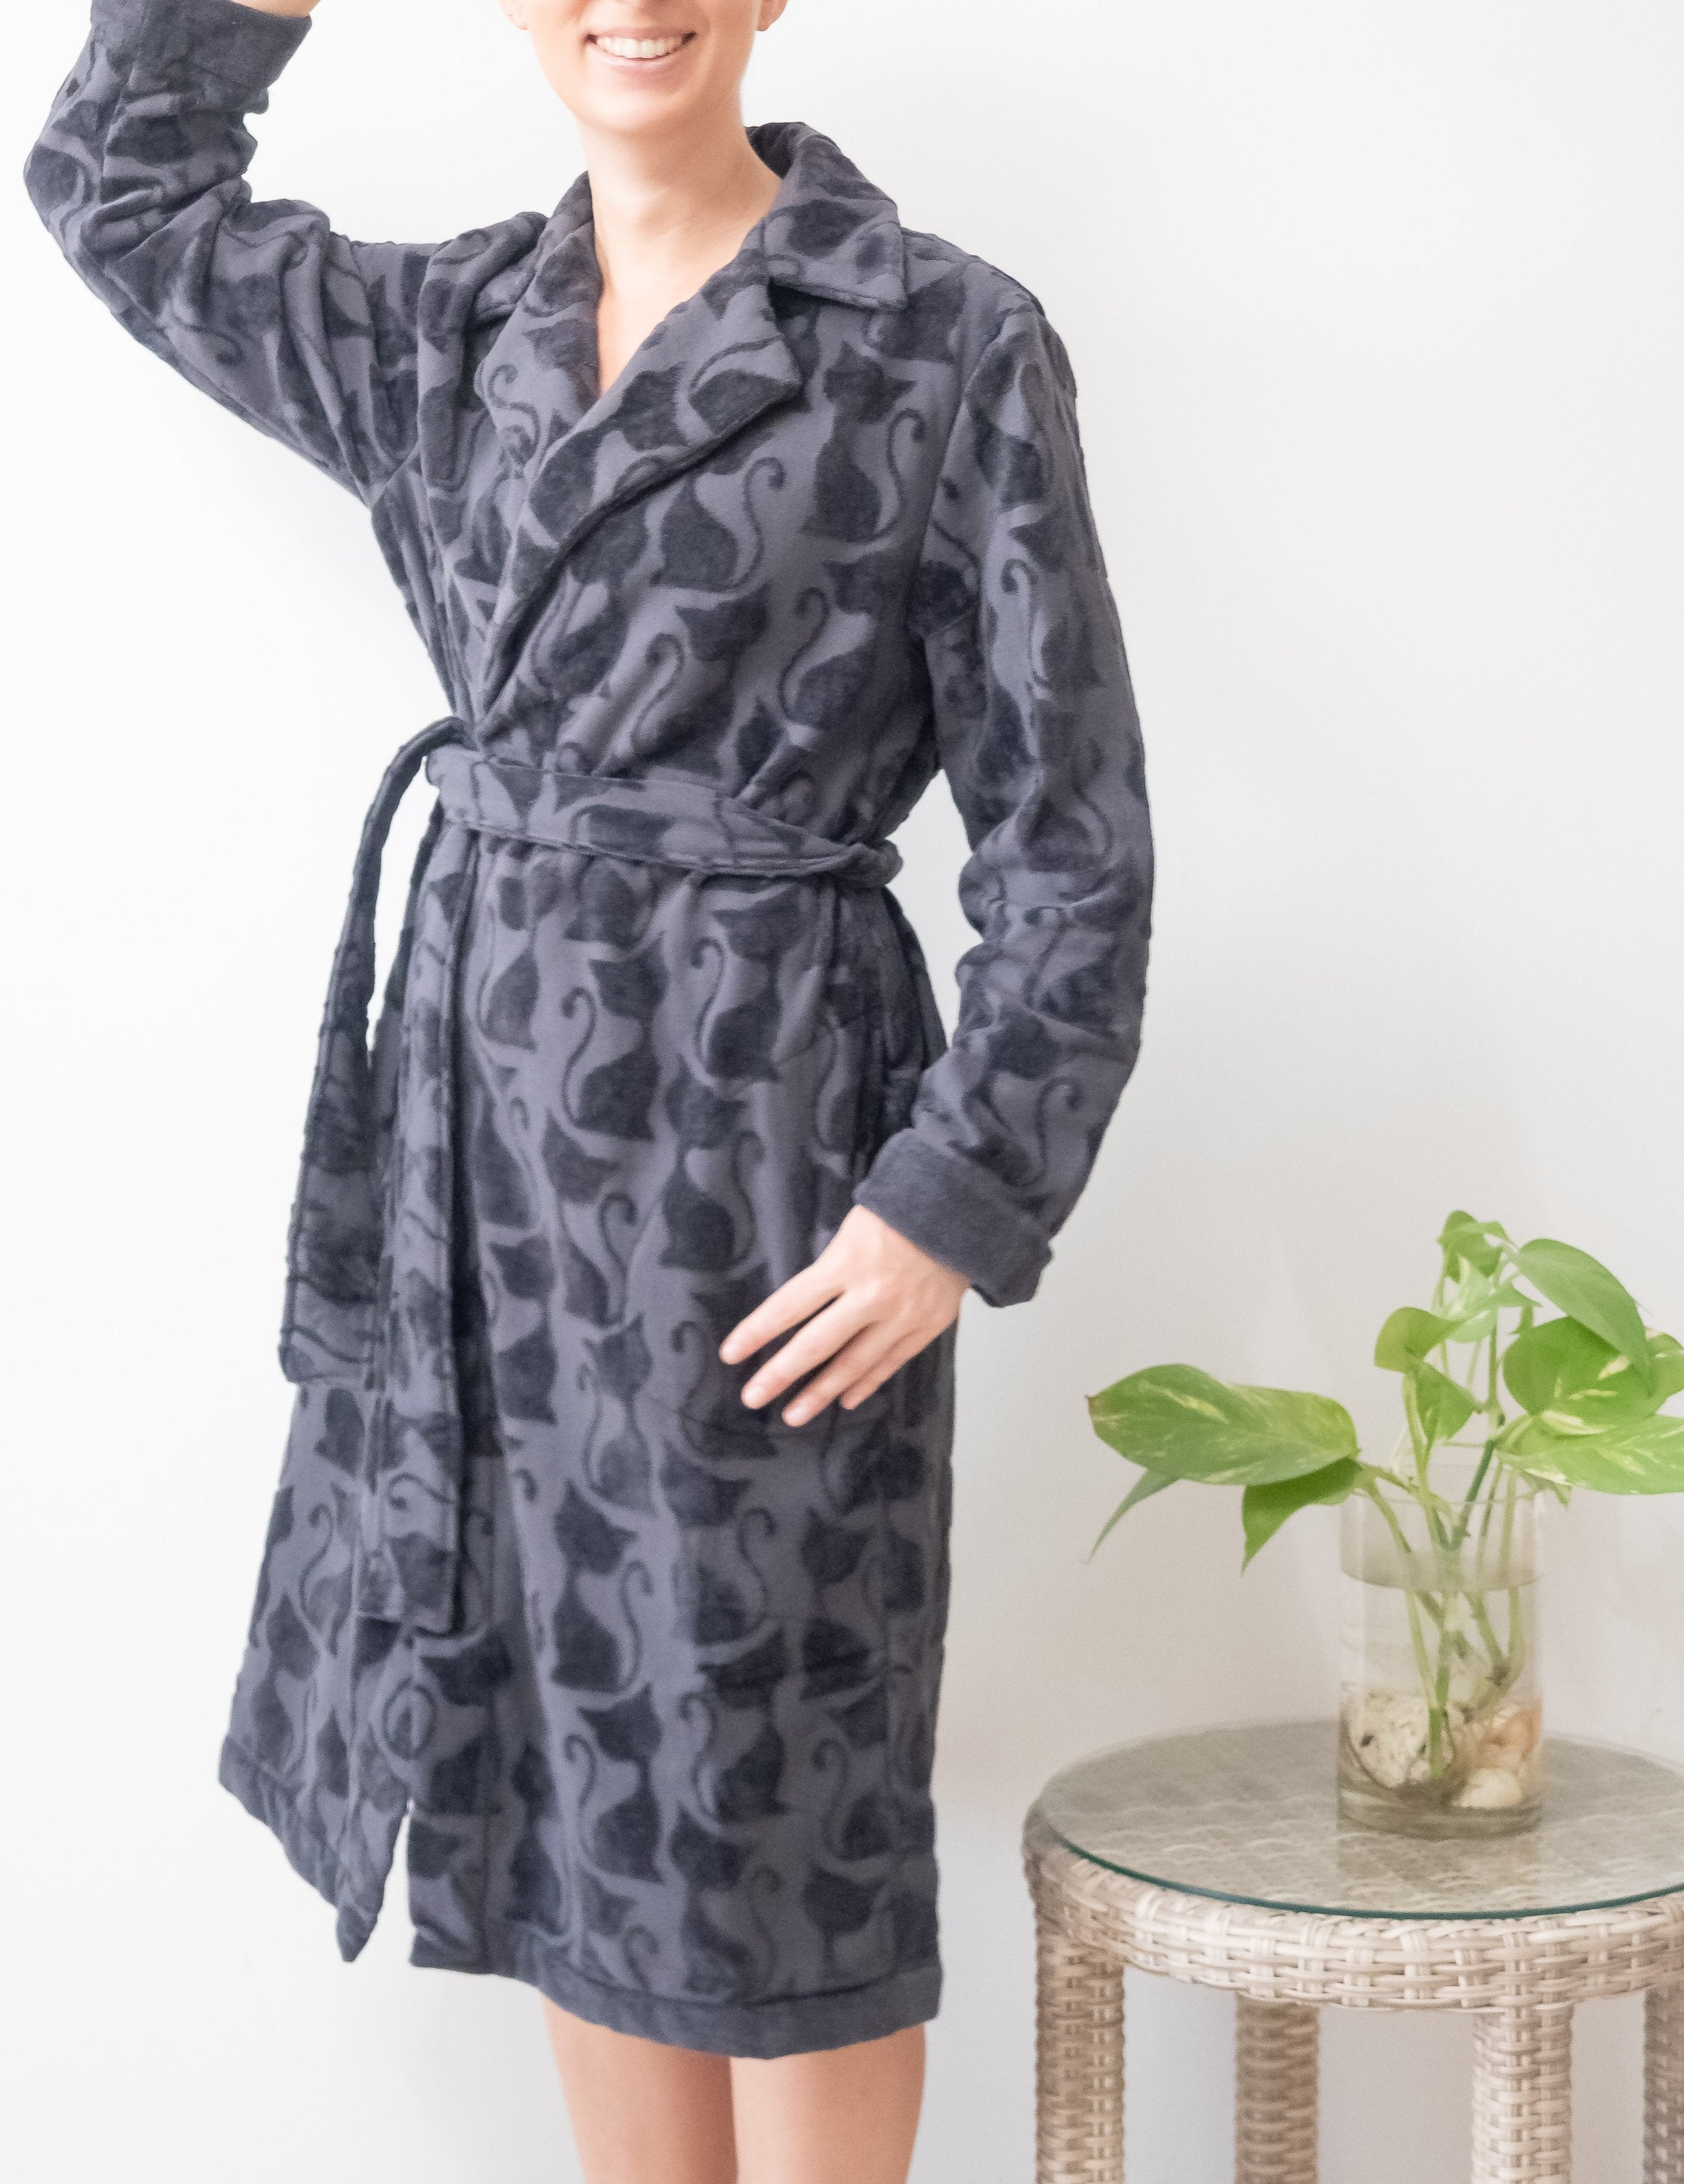 Bathrobe with cat print